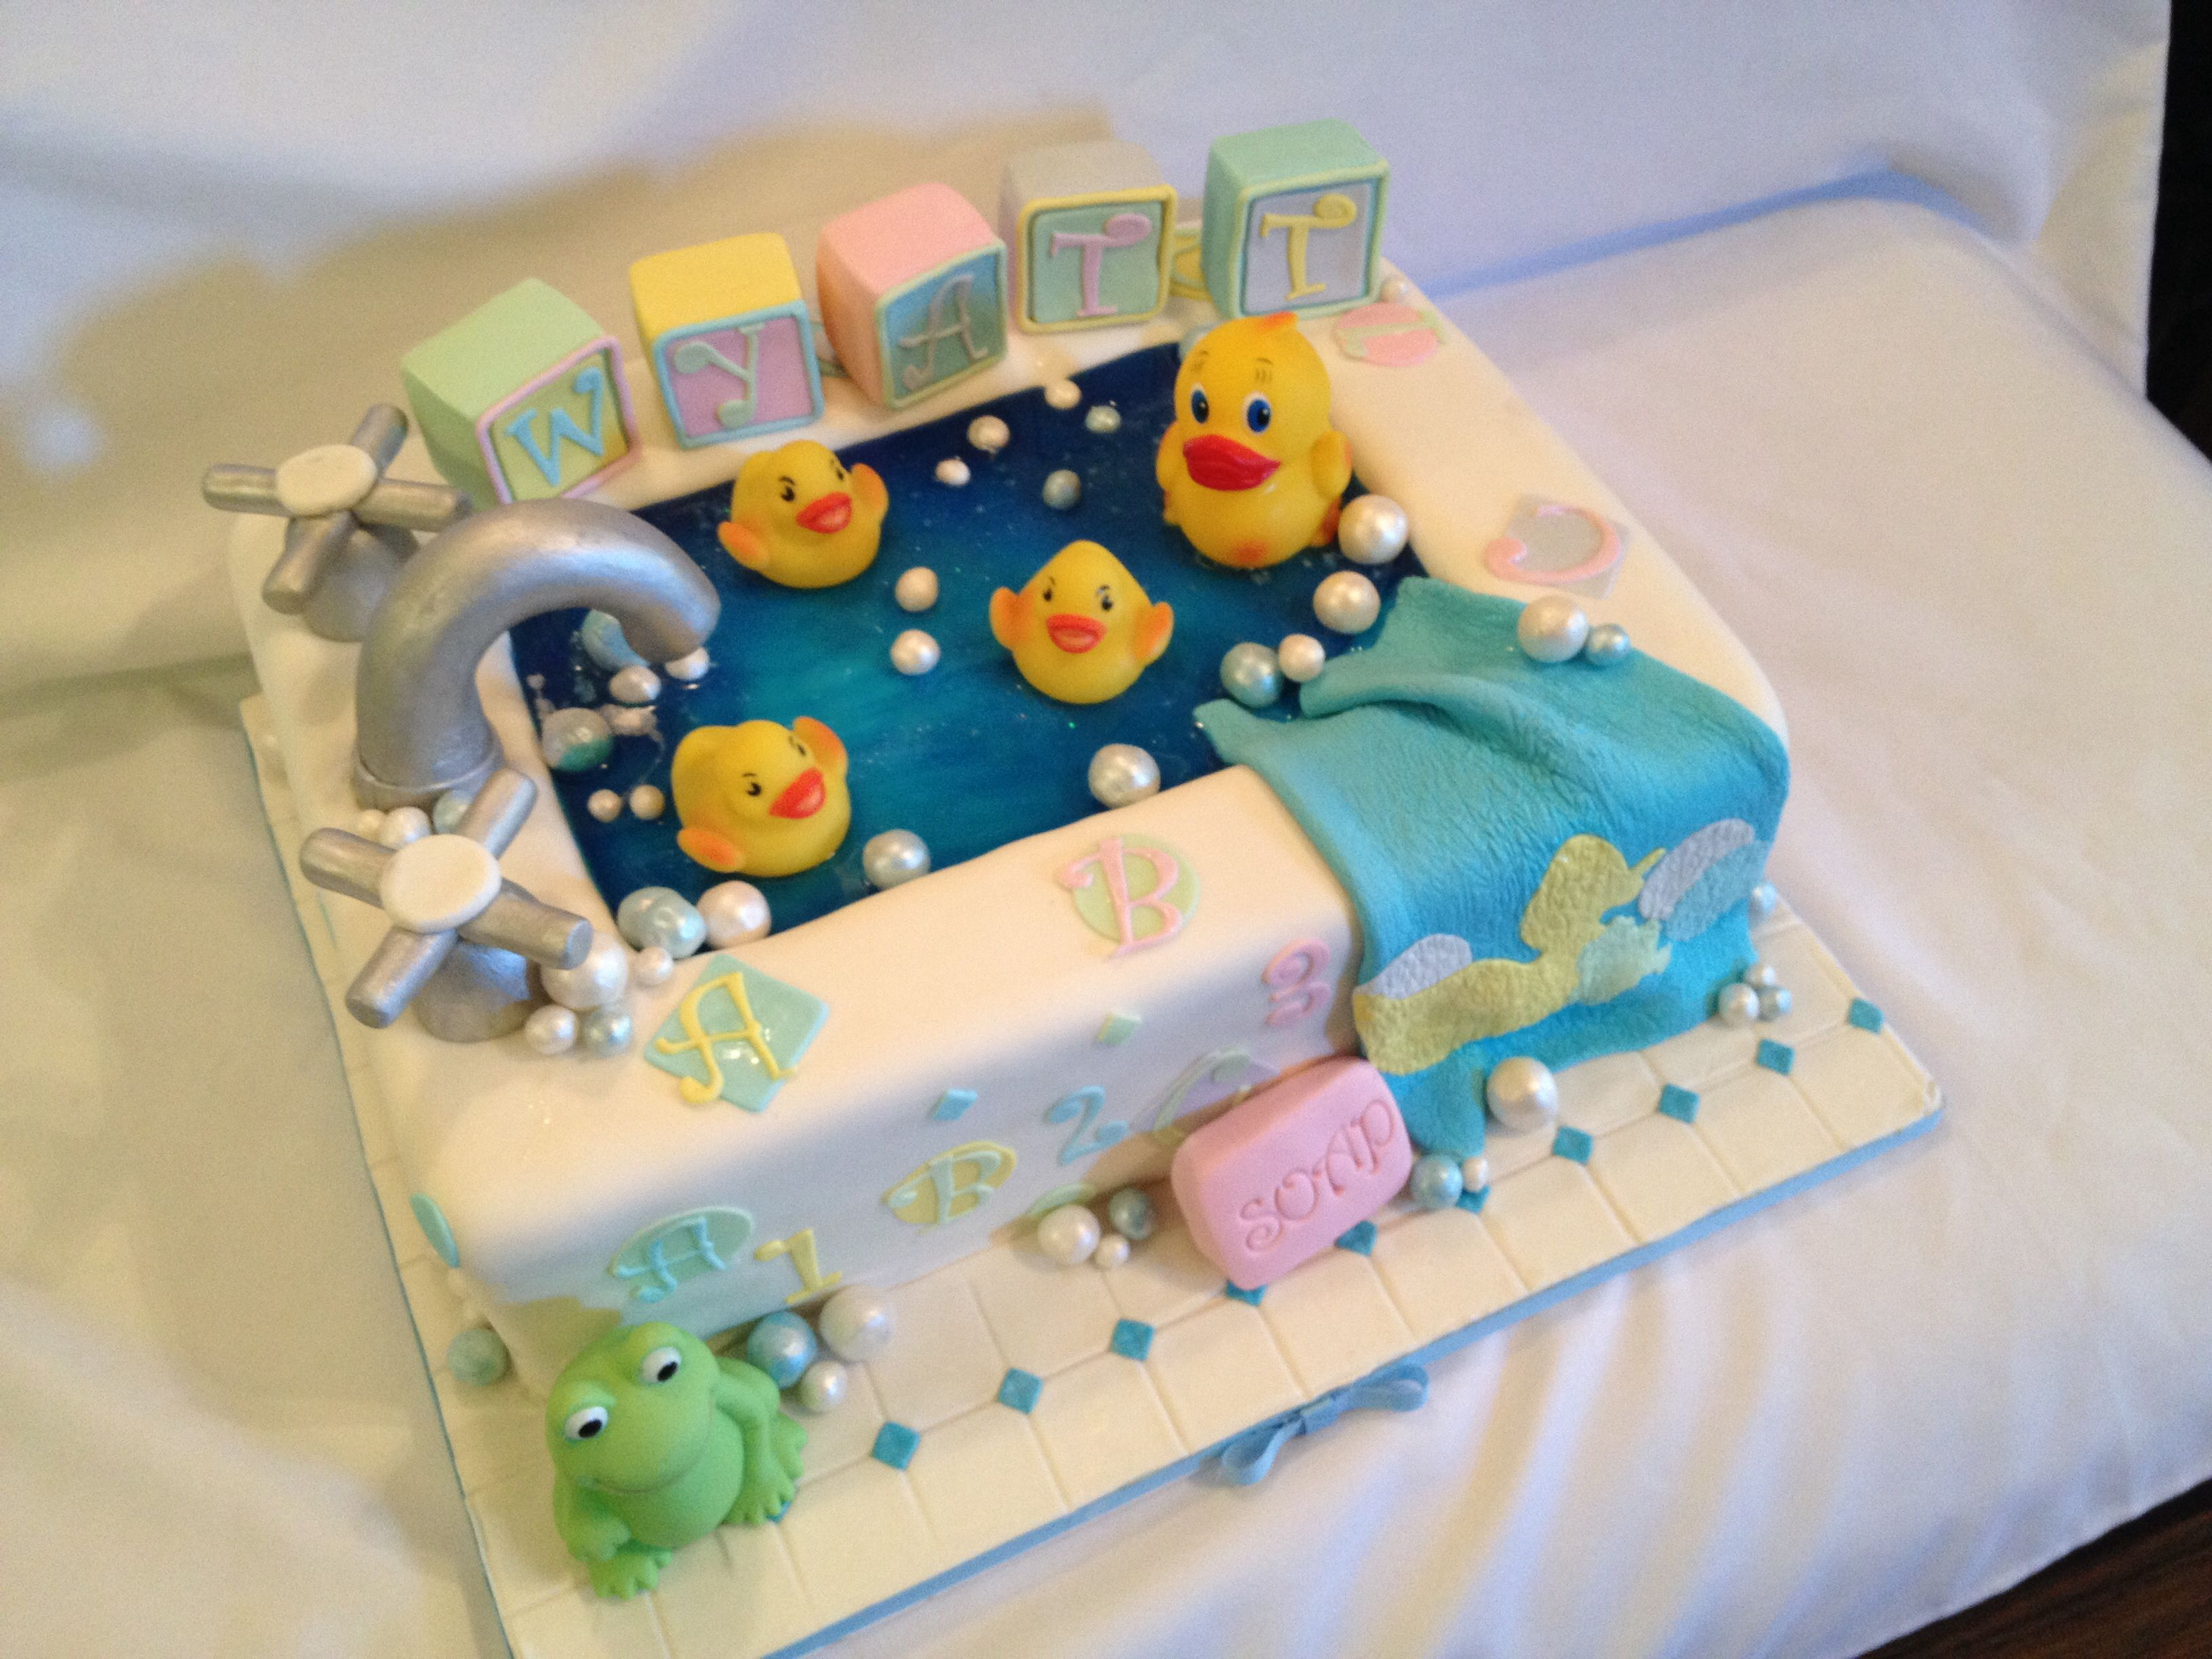 babyshower rubber duck in a tub cake check out my page at wwwfacebook